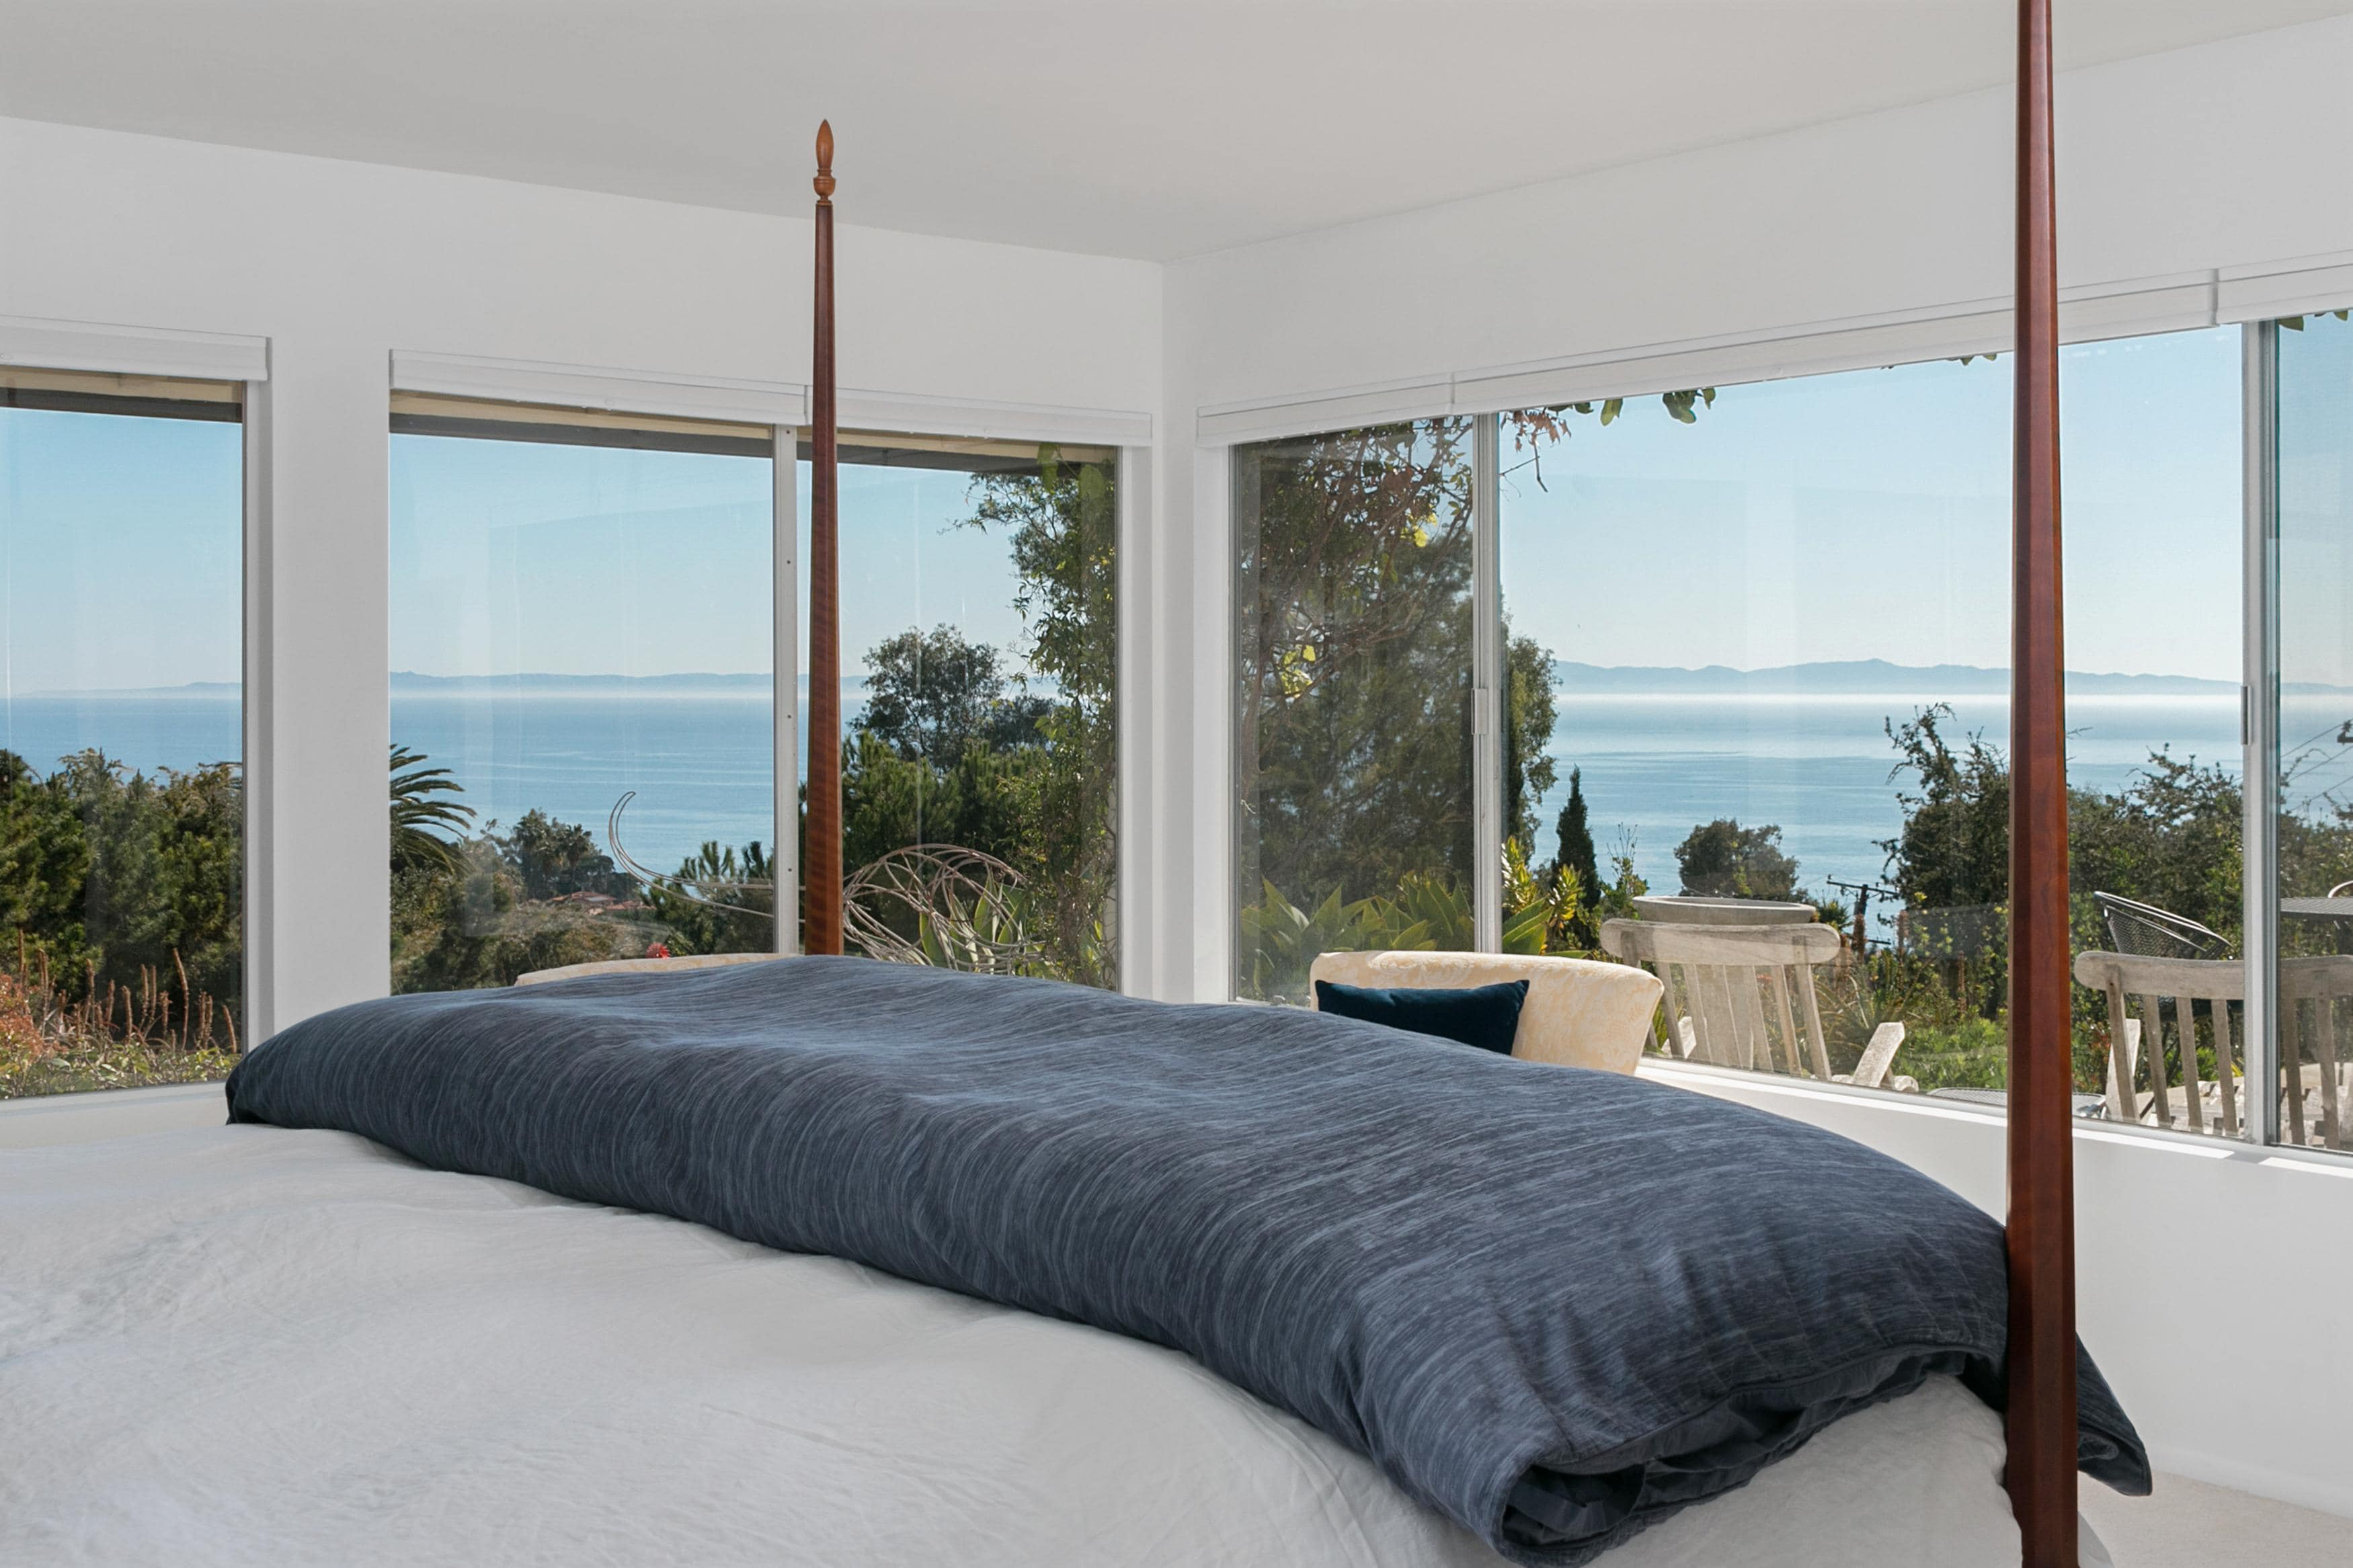 Welcome to your tropical oasis in Santa Barbara! Wake up to a gorgeous ocean view in the master bedroom.